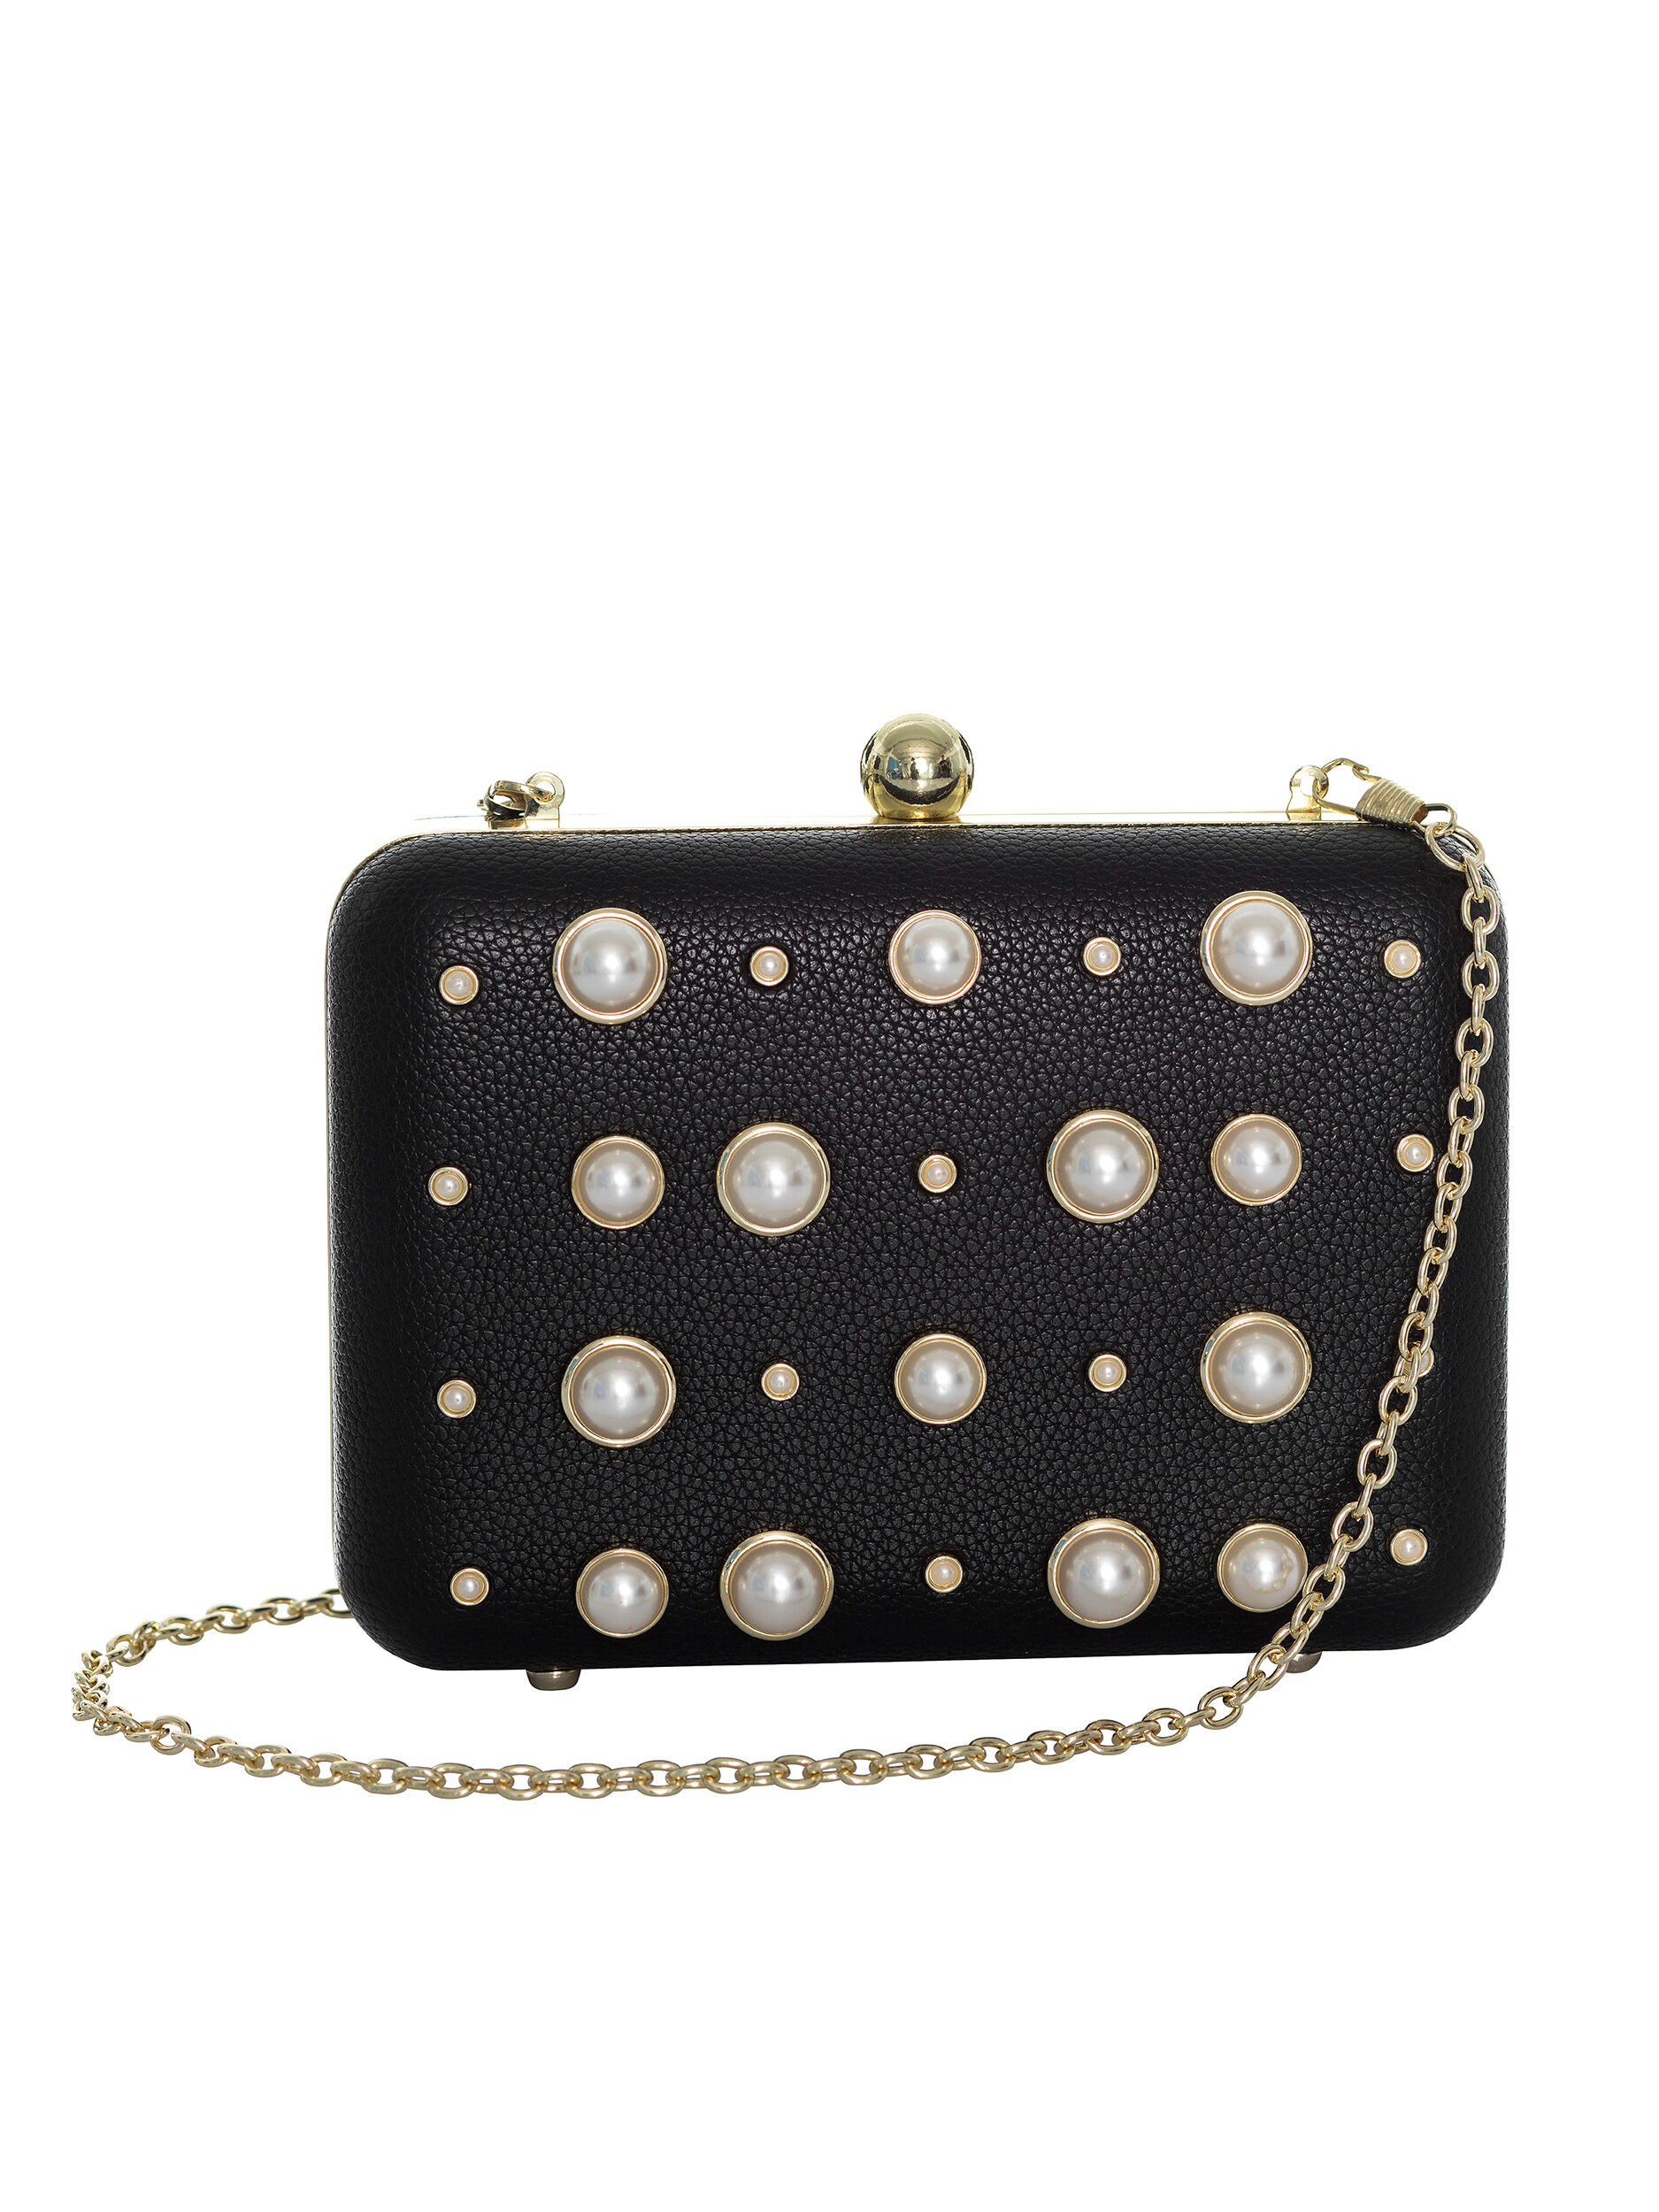 Lizzy Pearl Bag